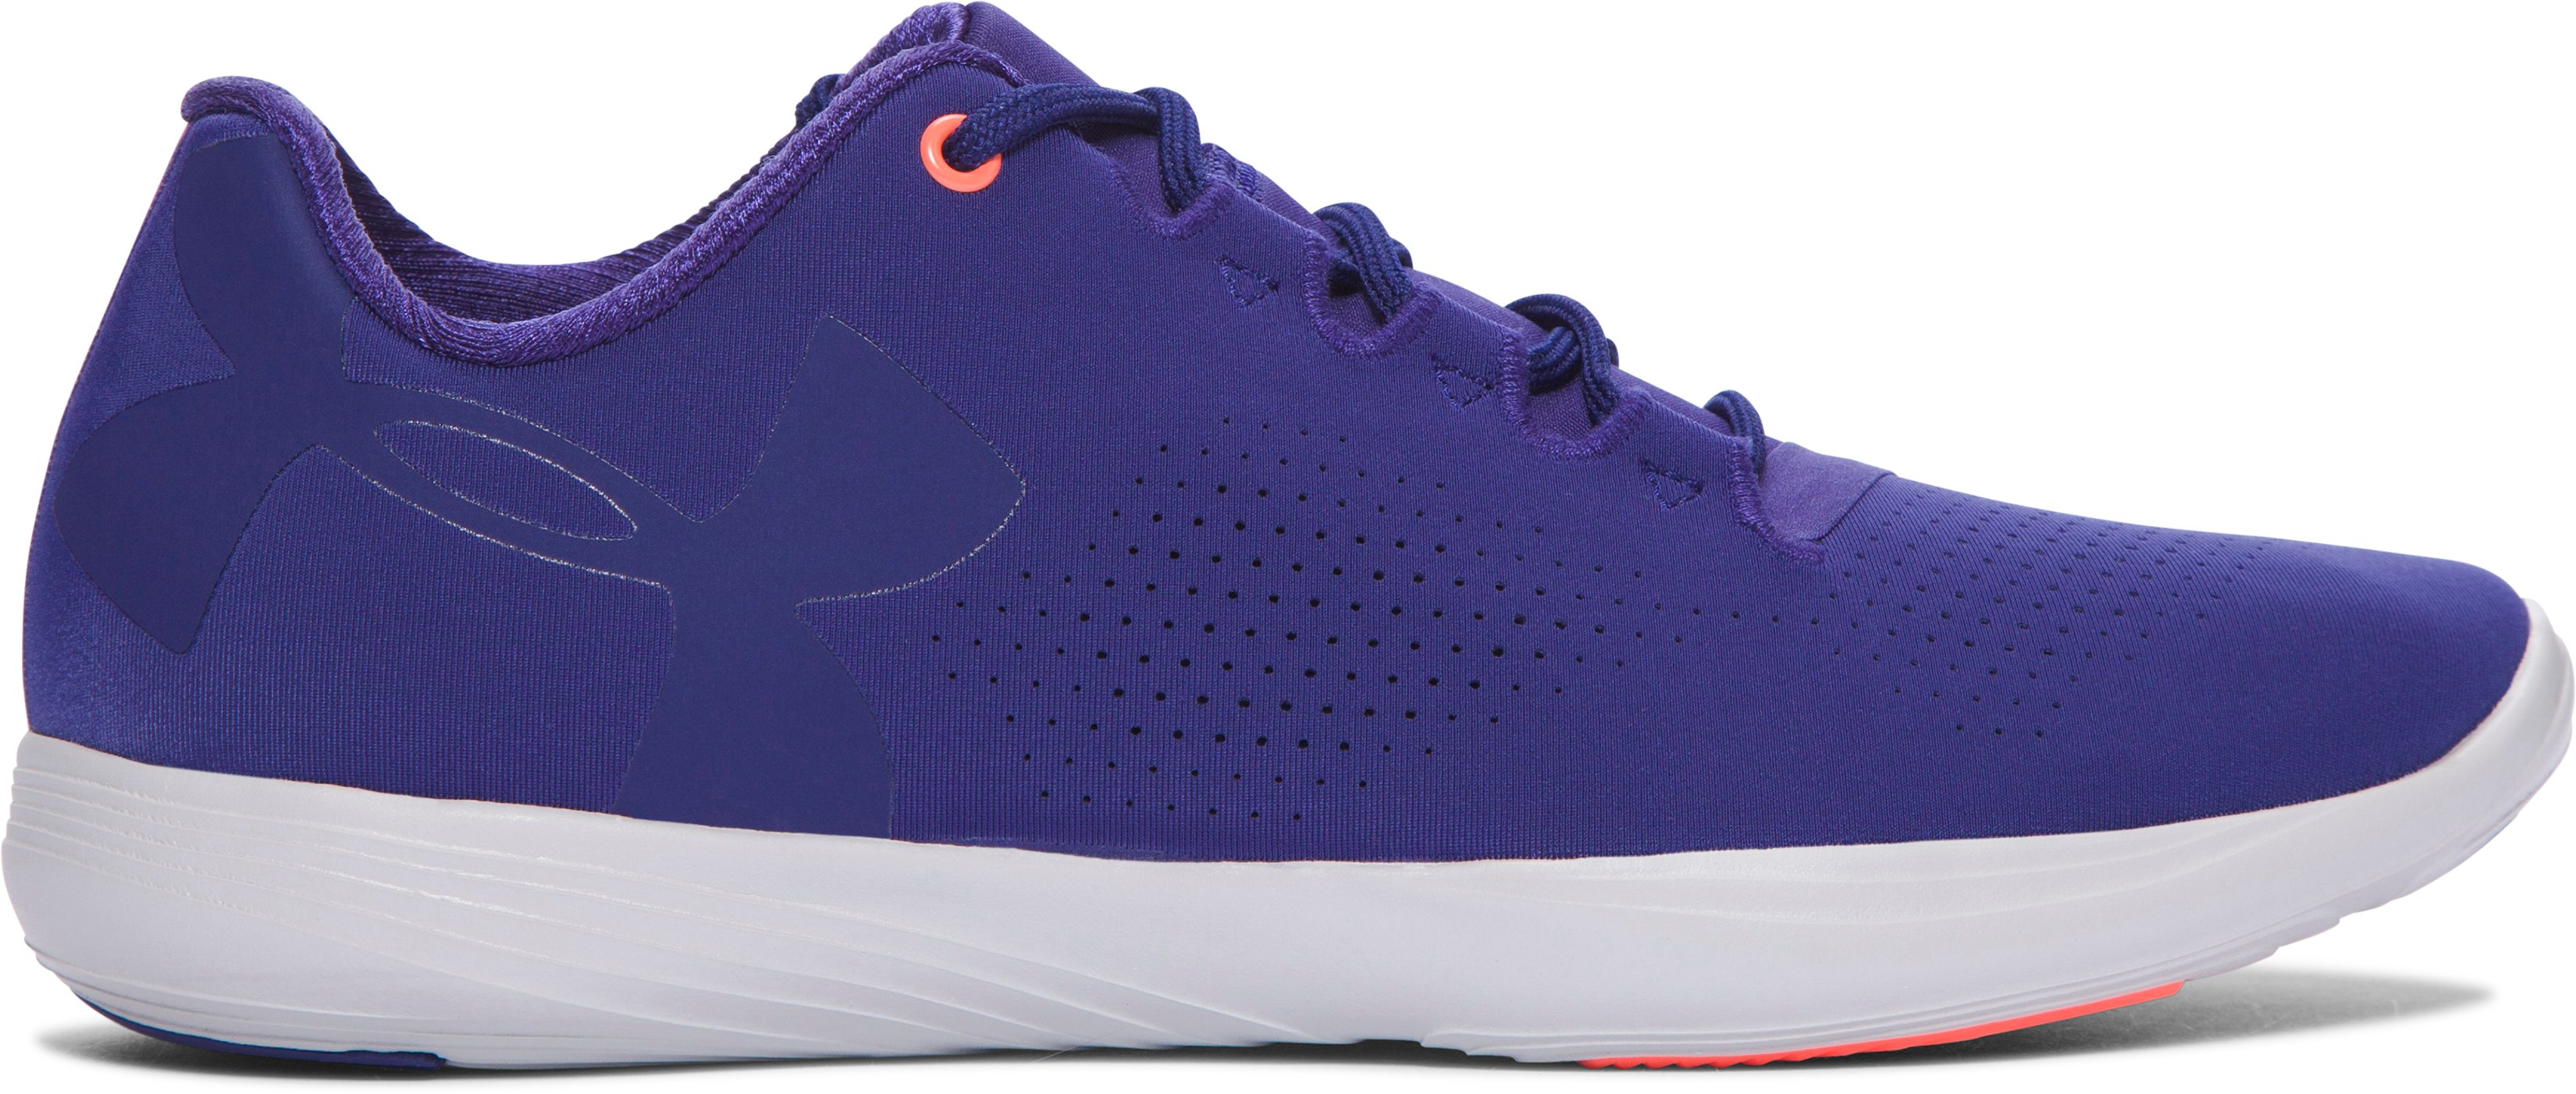 Women's UA Street Precision Low Training Shoes, EUROPA PURPLE